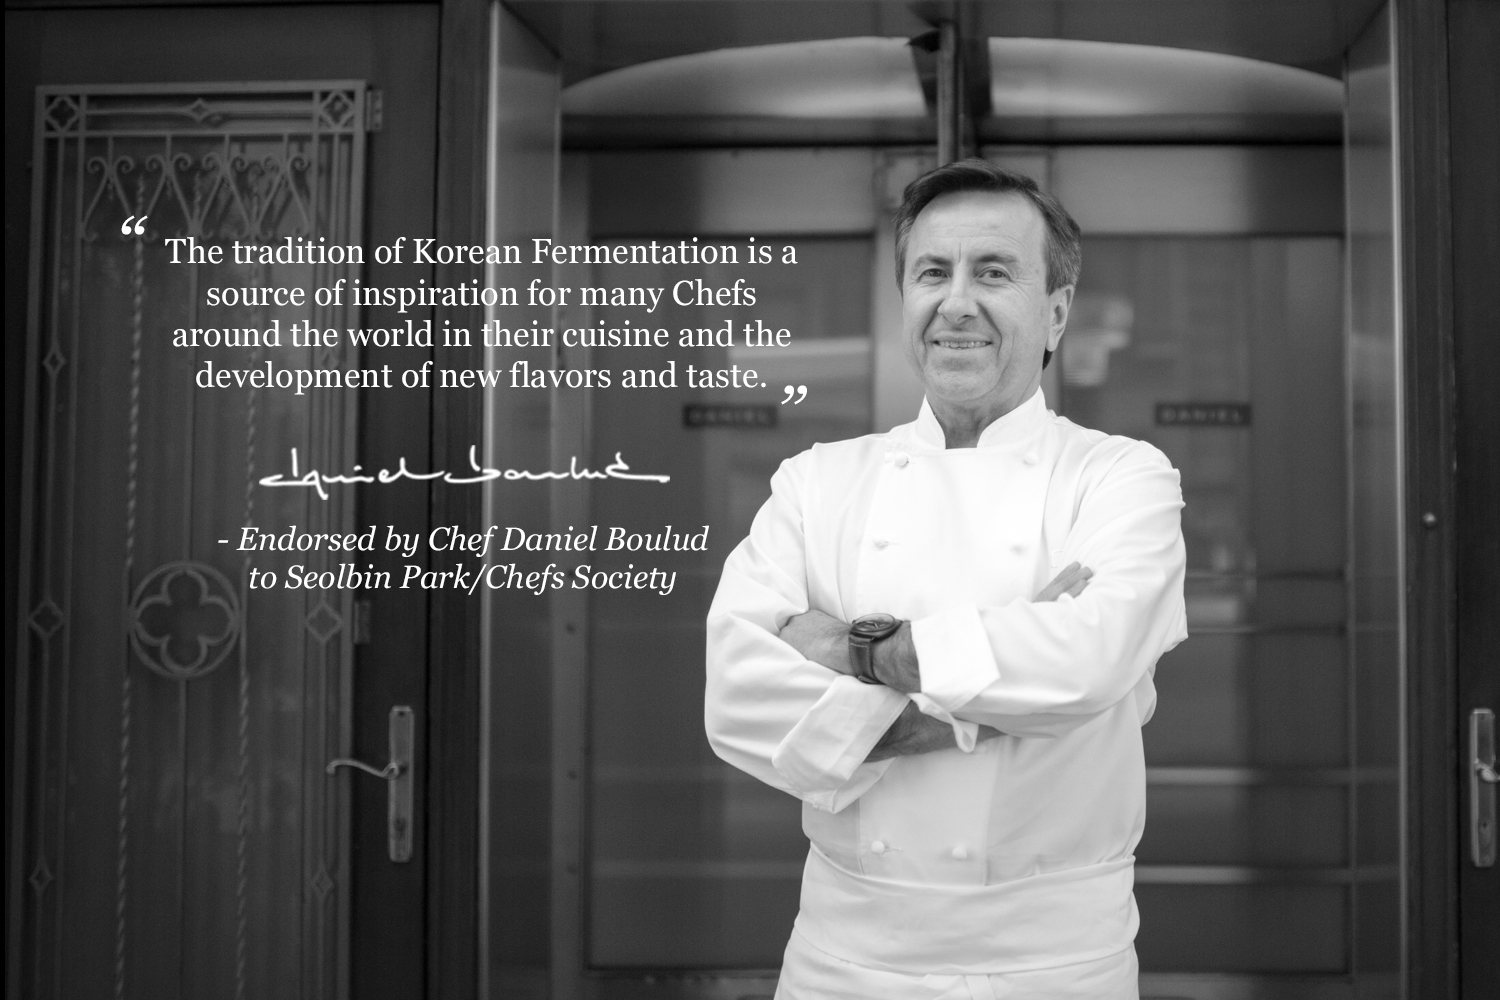 Chefs Society Endorsement by Daniel Boulud